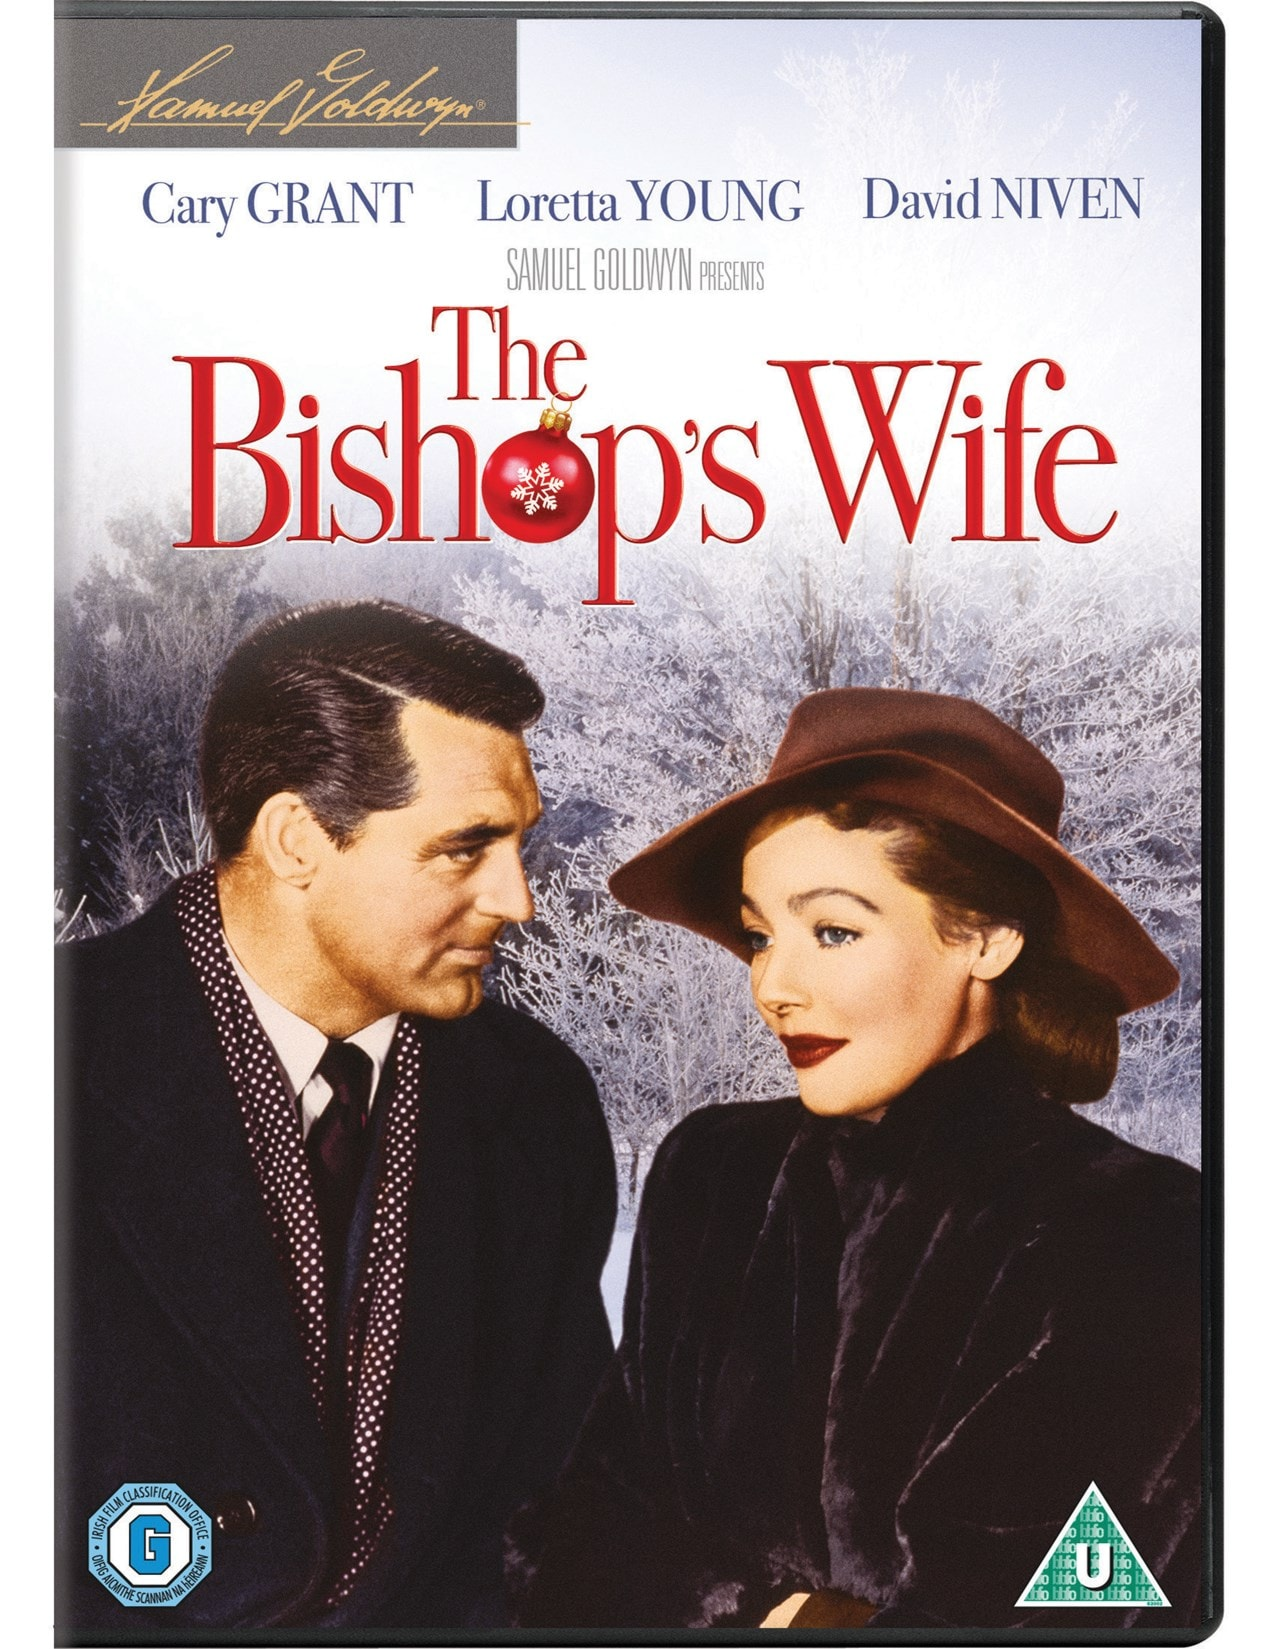 The Bishop's Wife - Samuel Goldwyn Presents - 1